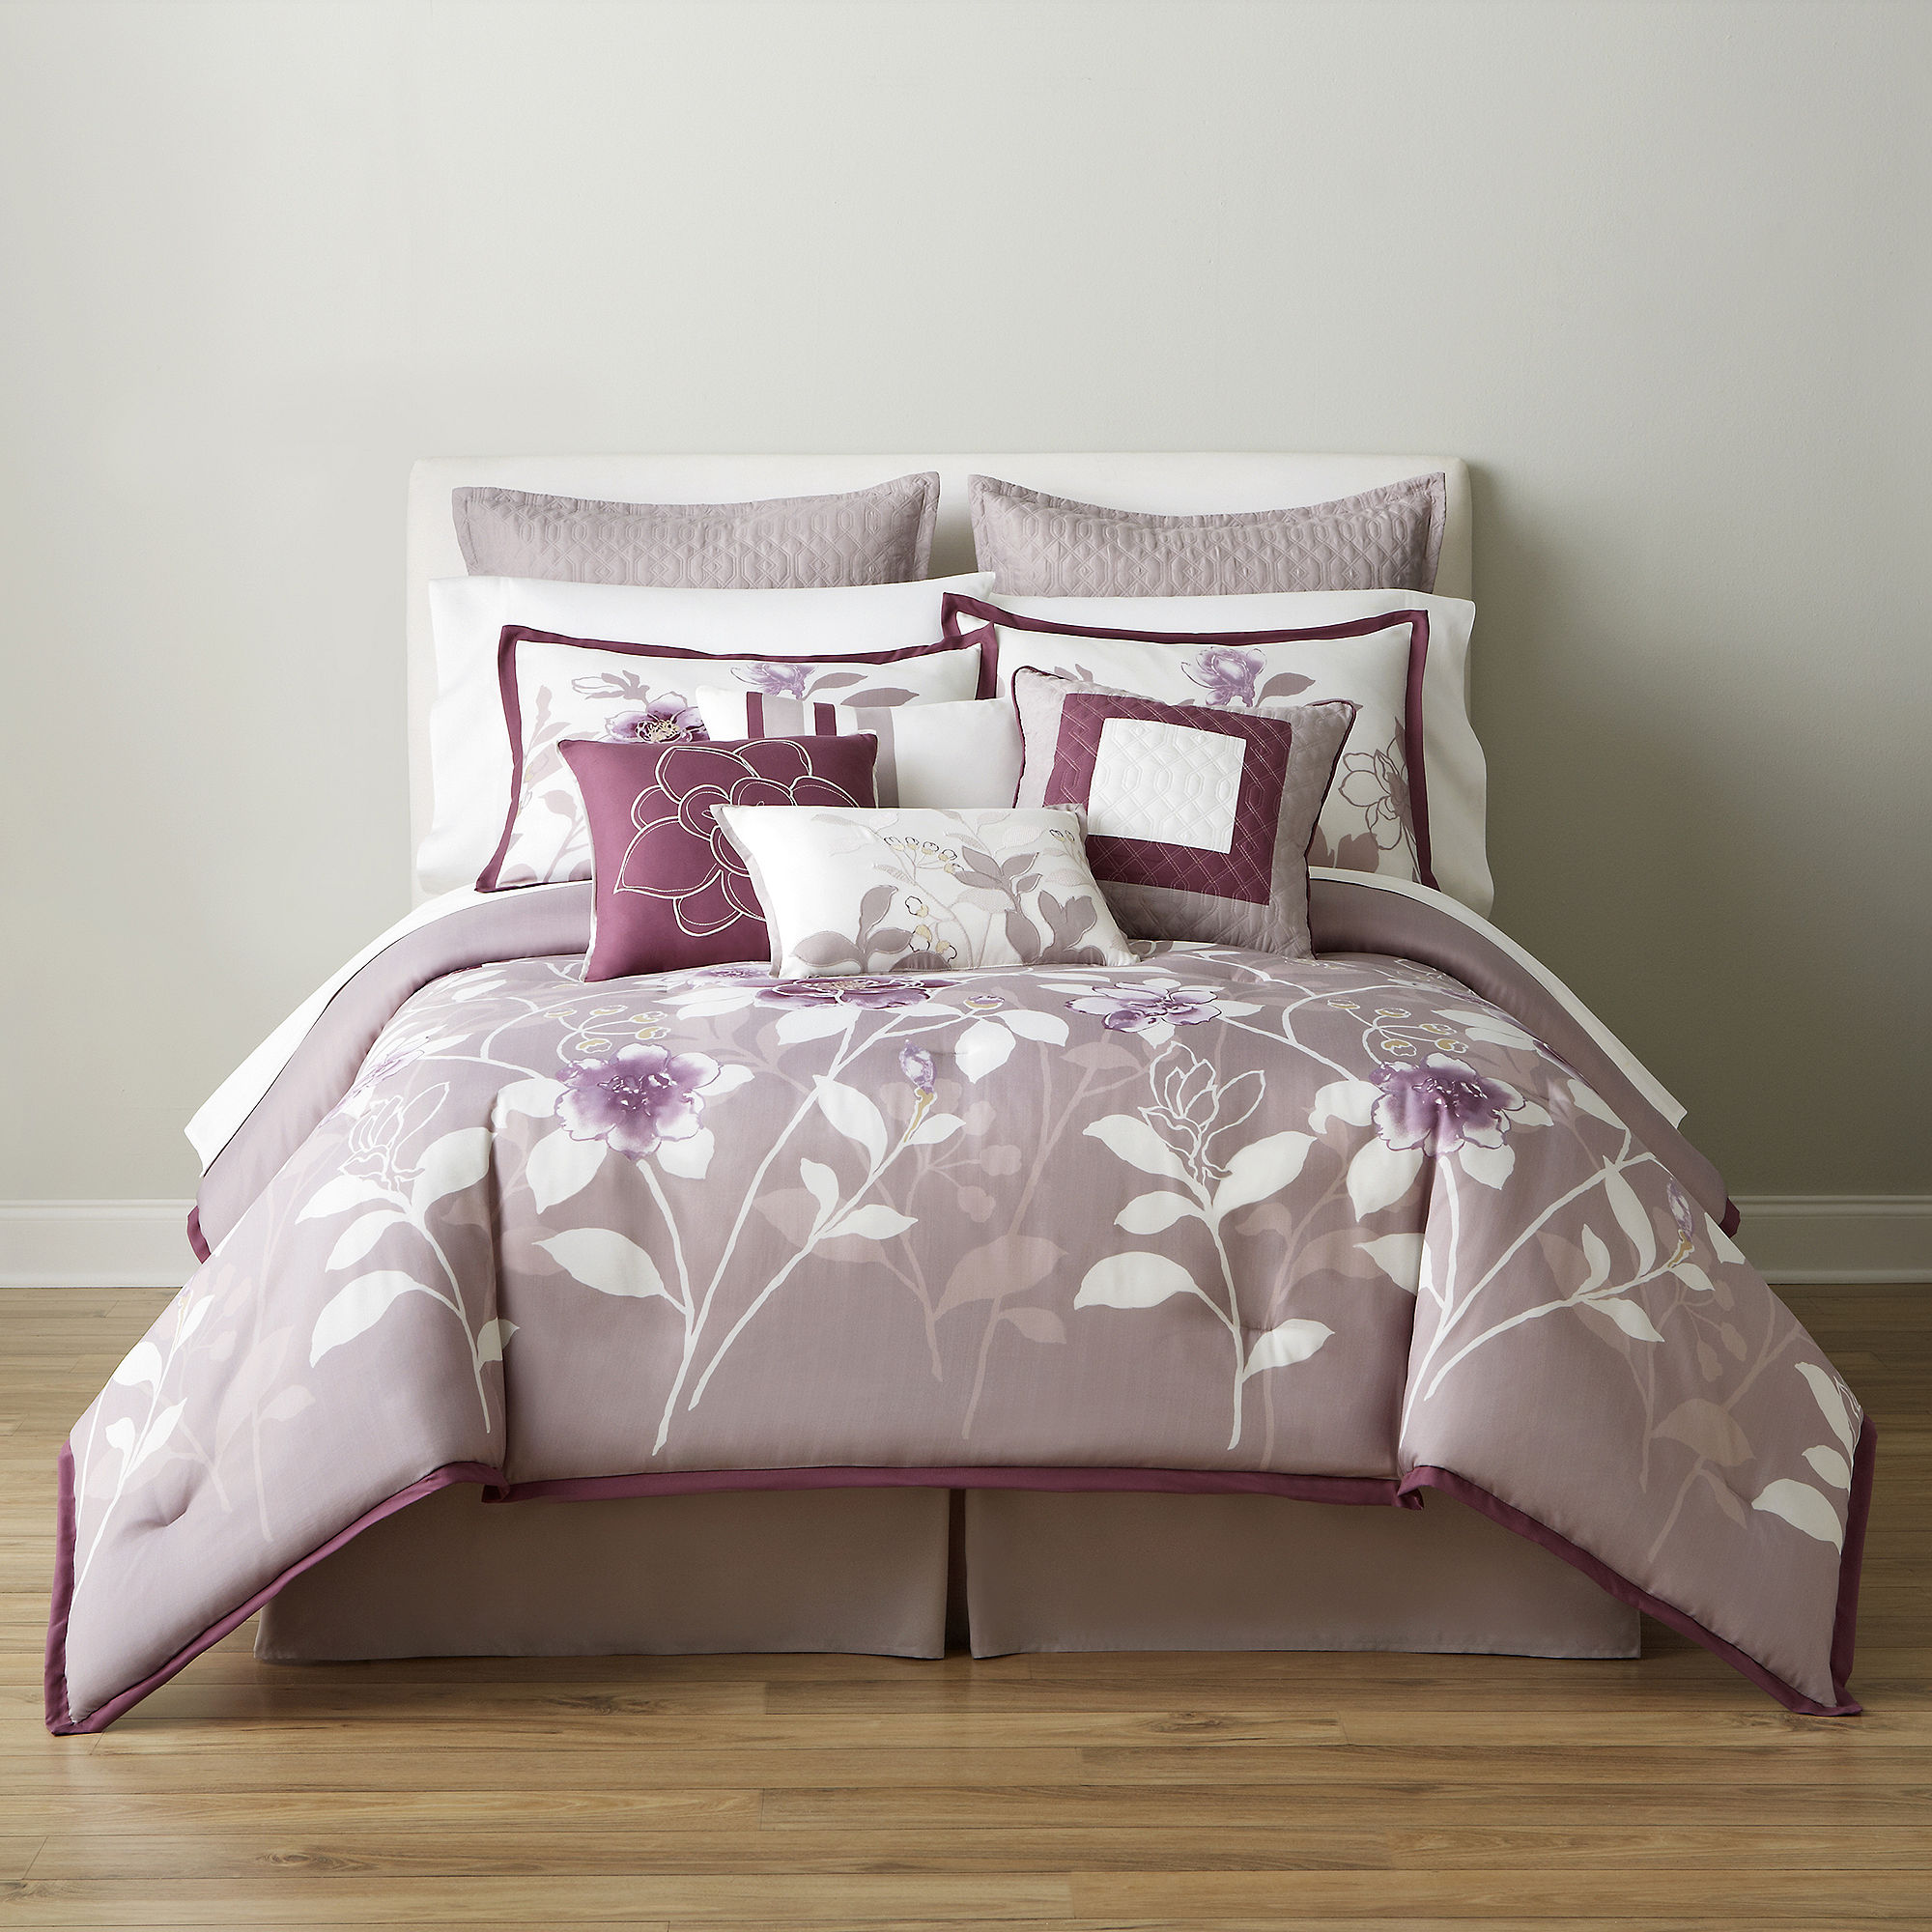 Buy Bed Set: BUY Home Expressions Melise 10-pc. Comforter Set NOW